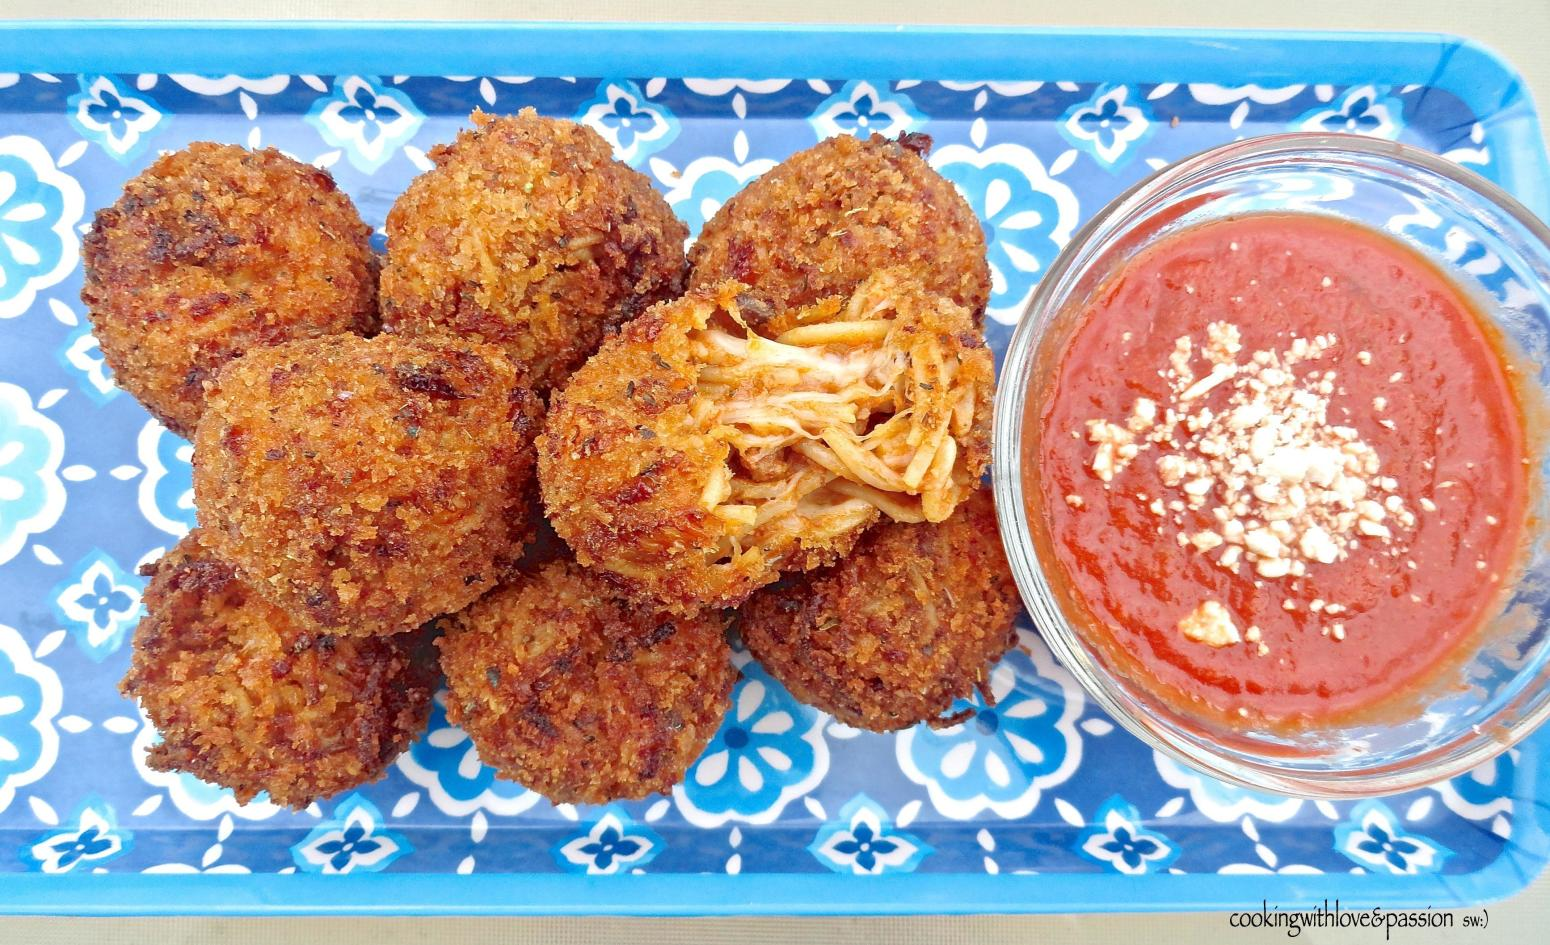 They be Lovin' Dem Deep Fried Spaghetti Balls Recipe